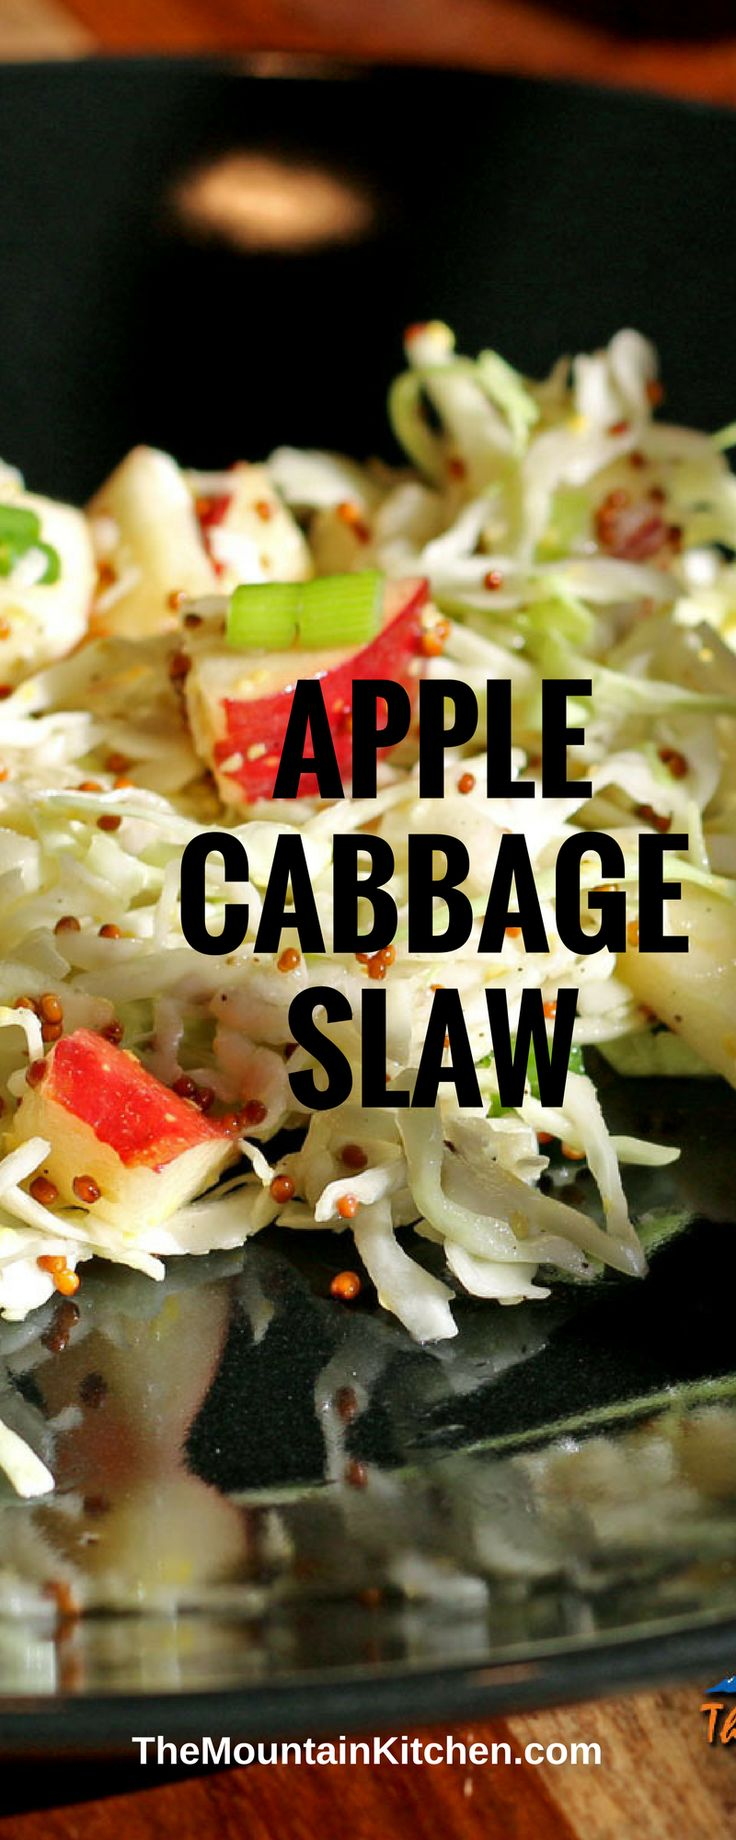 Crunchy cabbage, crisp apples and green onions tossed with a zesty mustard dressing, this Apple-Cabbage Slaw makes a great side dish for any summer BBQ.